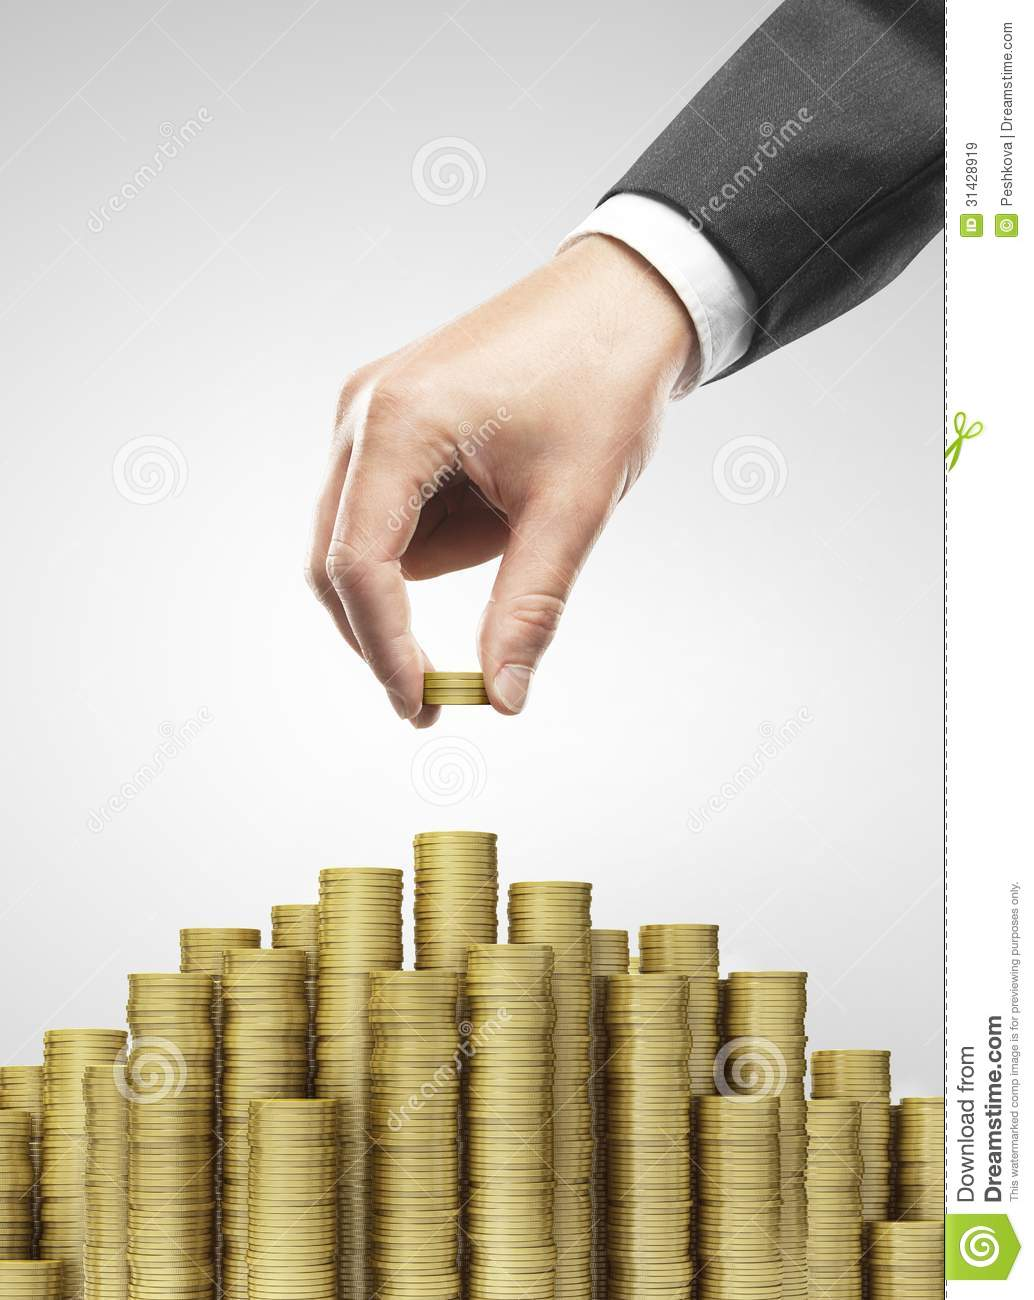 Hand Put Gold Coins Stock Image. Image Of Market, European